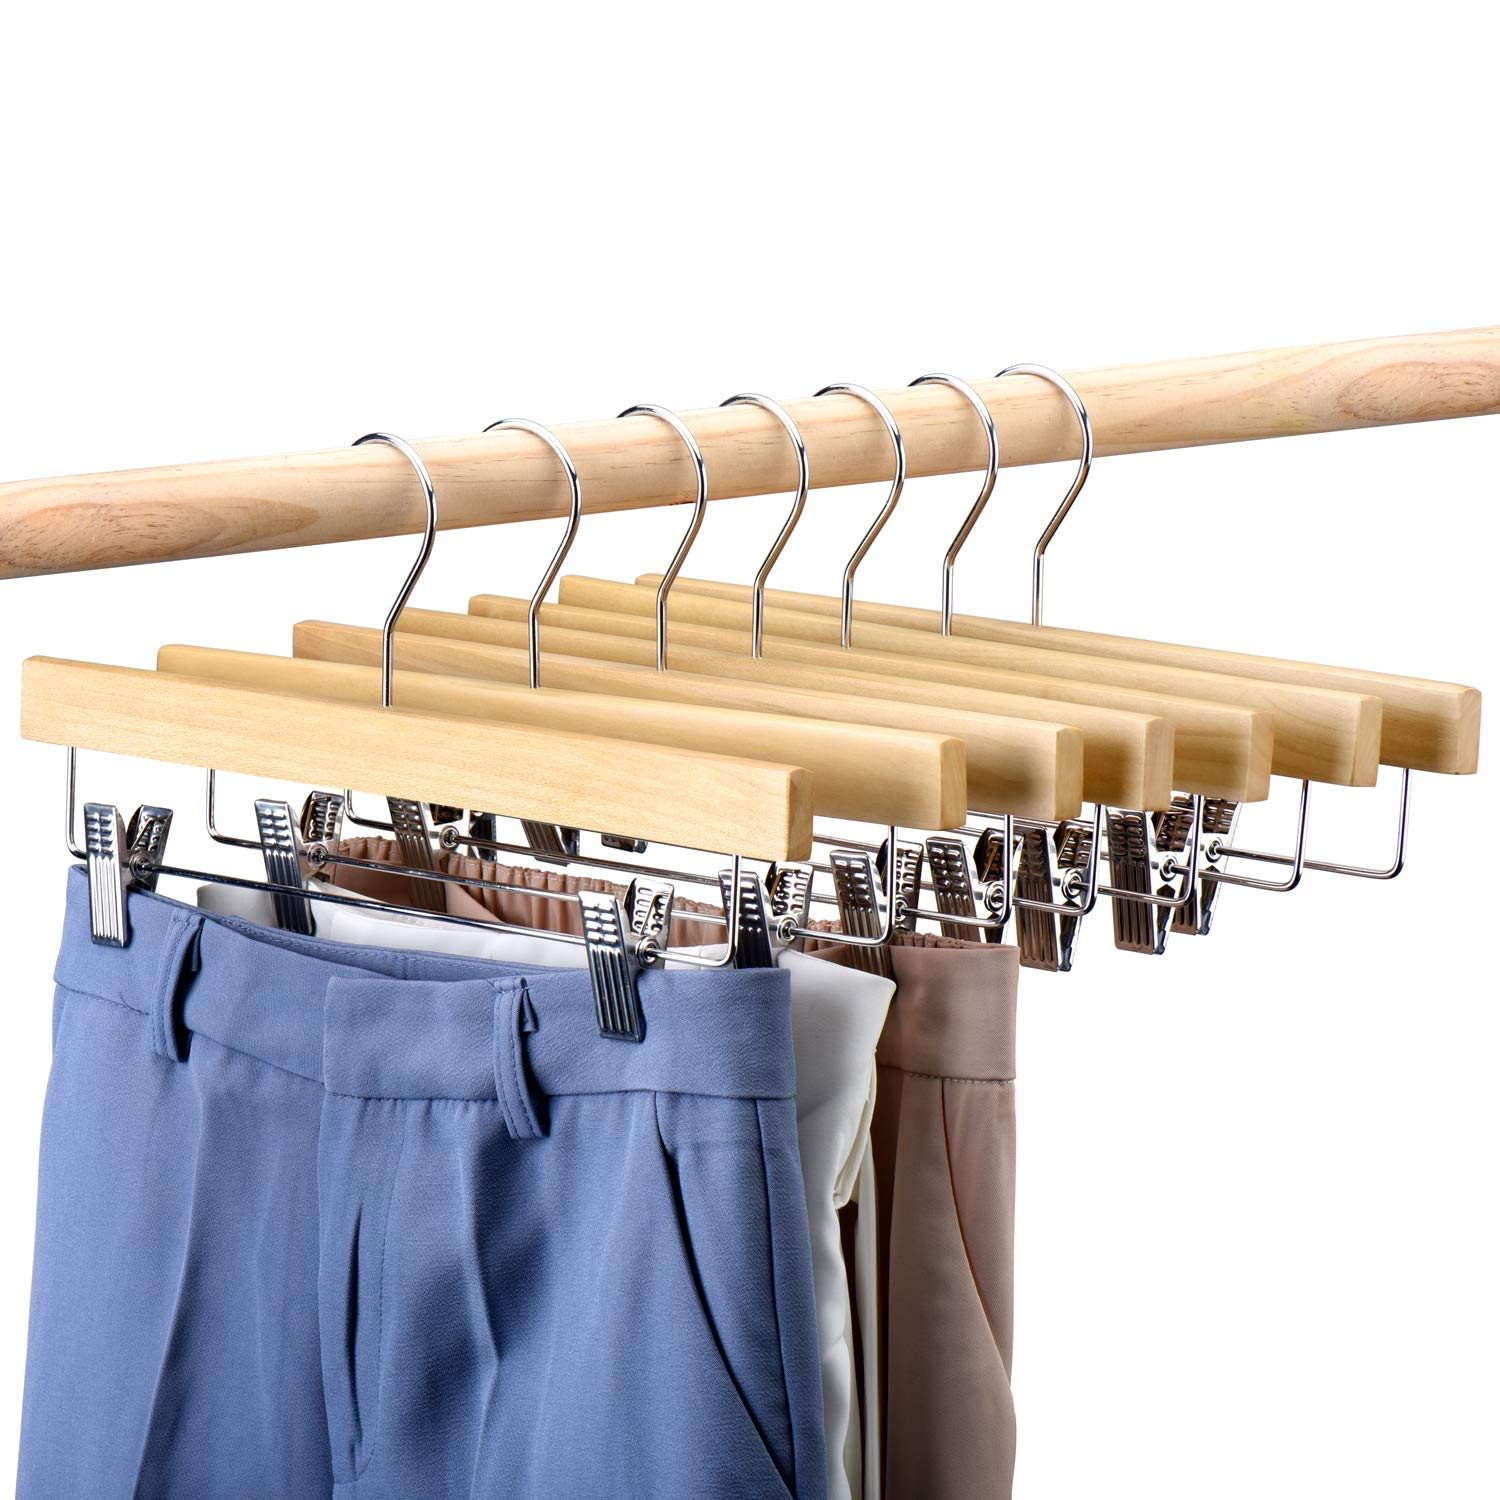 HOUSE DAY Wooden Pants Hangers 25pcs 14inch Wood Skirt Hangers Trousers Bottom Hangers with Adjustable Clips, 360 Swivel Hook, Premium Solid Wood, Natural Wood Hangers Elegant for Closet Organization by HOUSE DAY